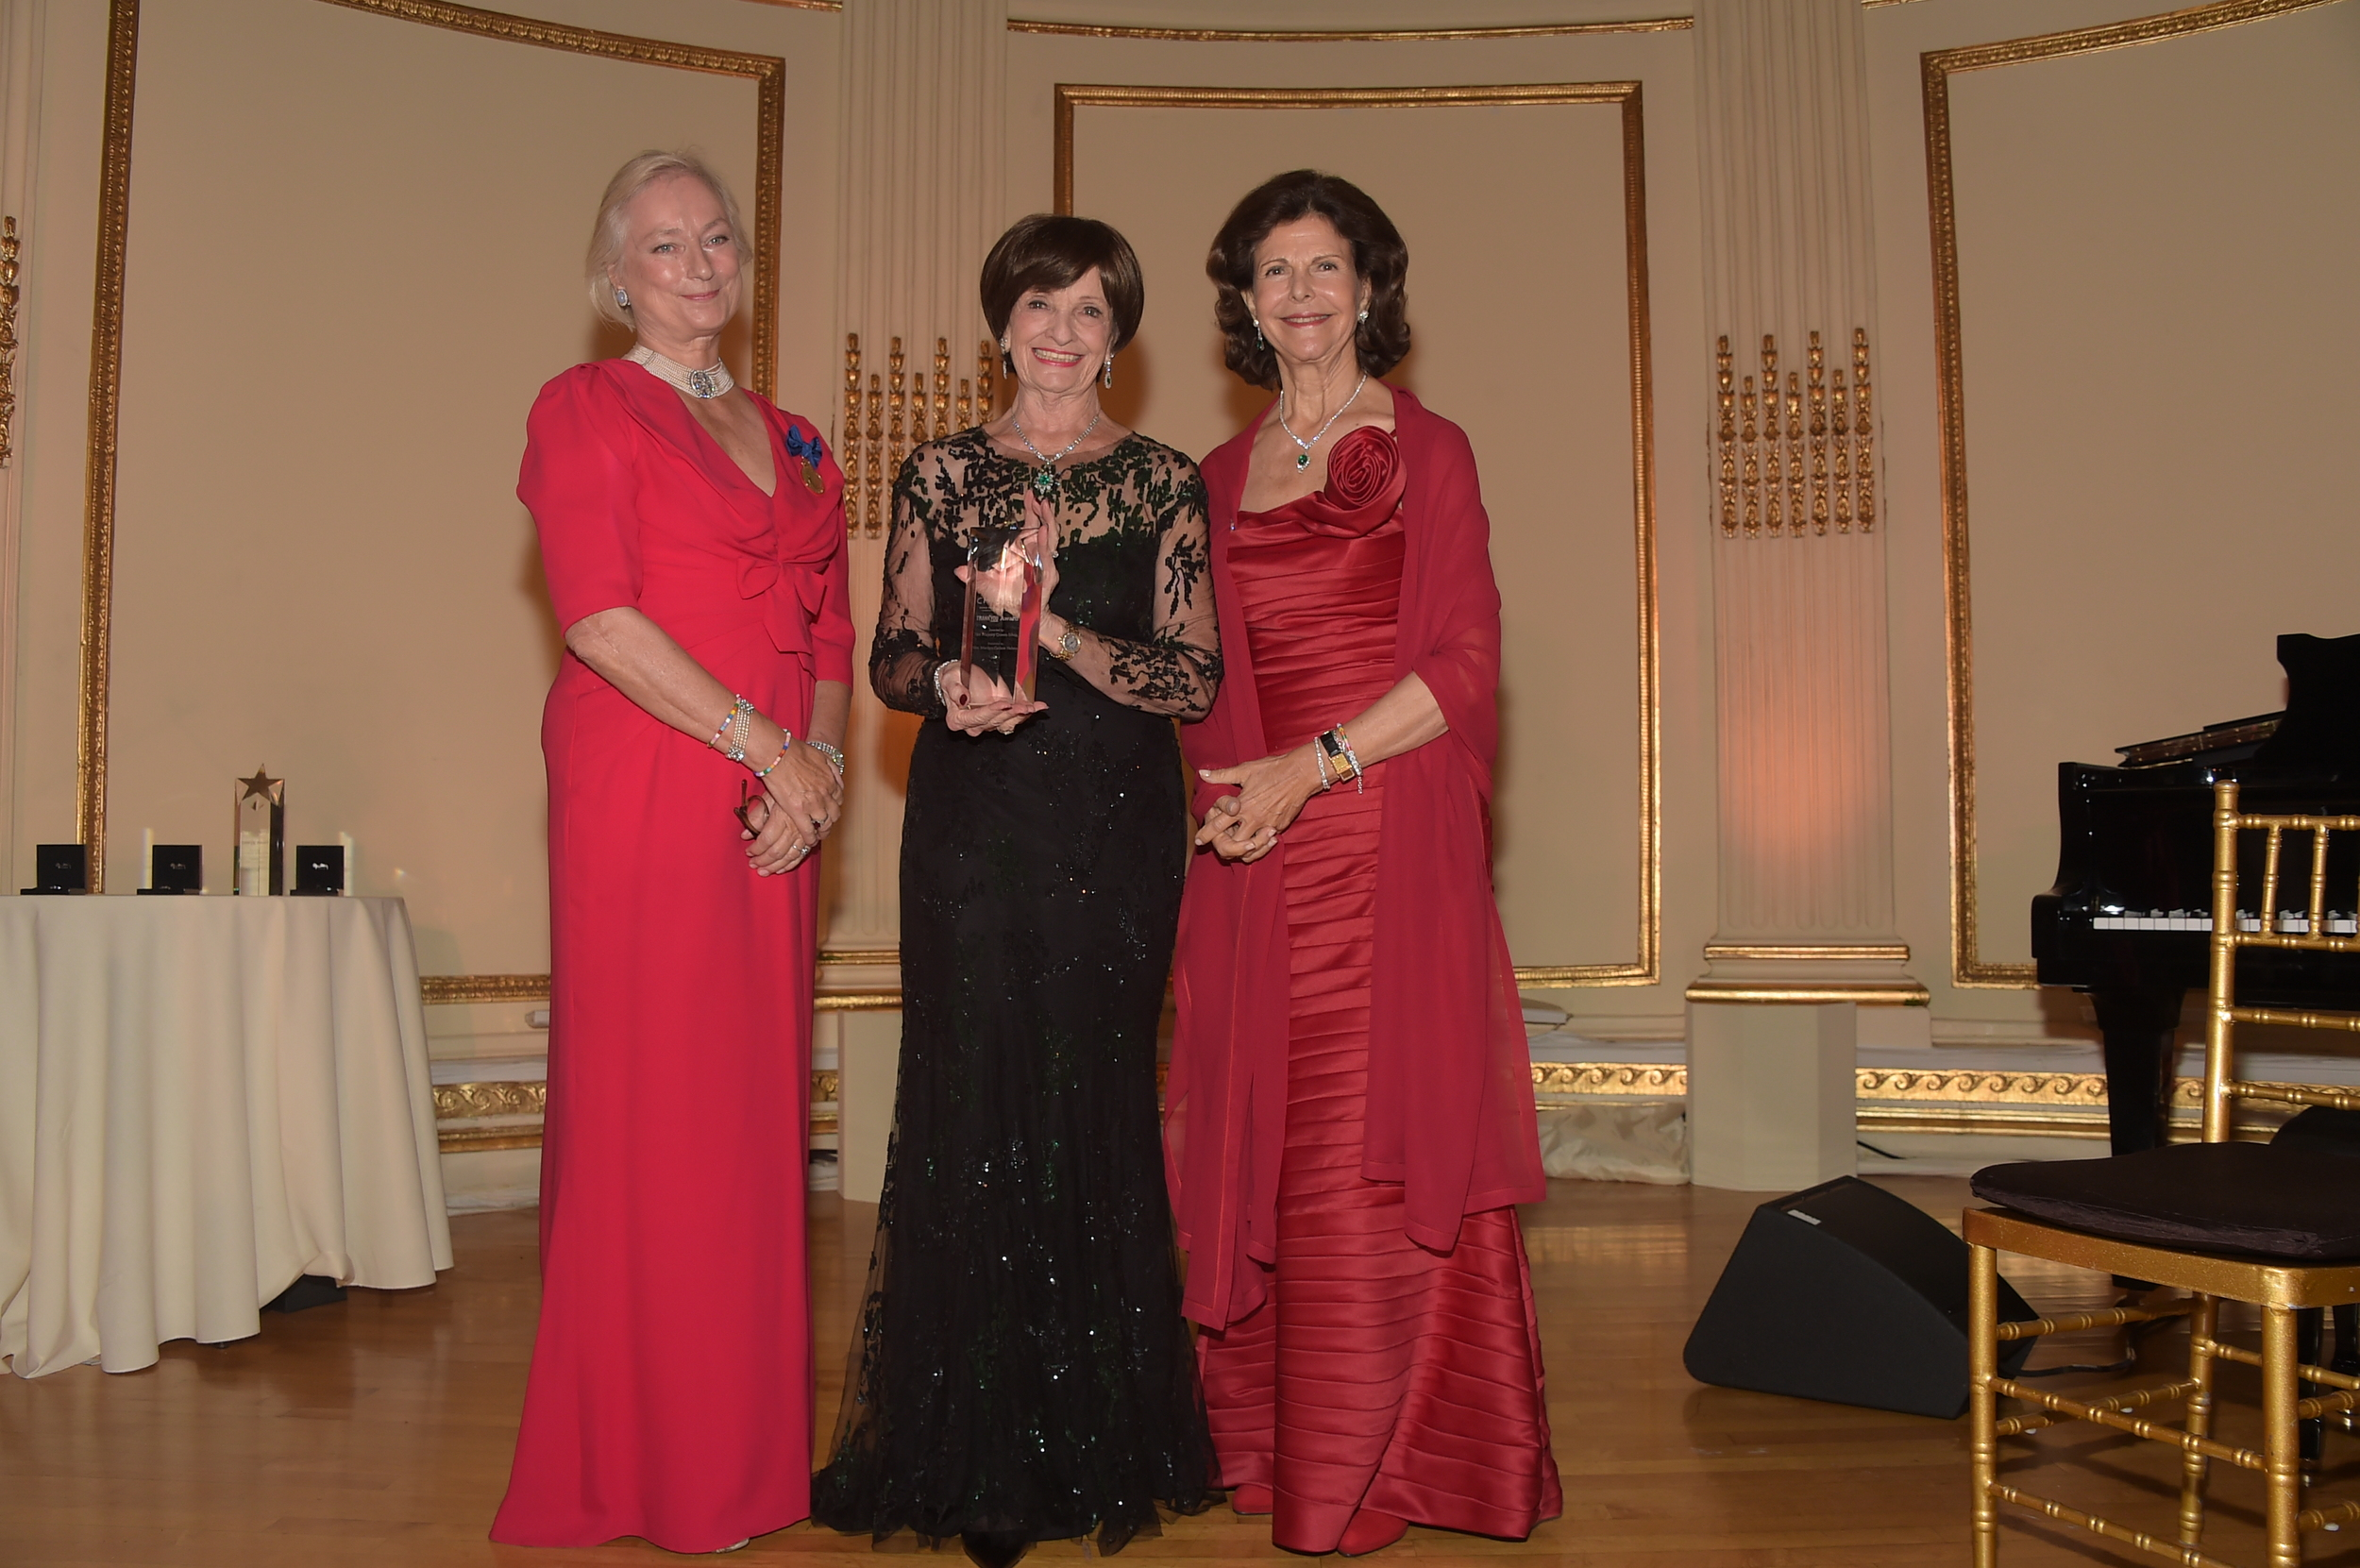 HM Queen Silvia (R) with Marilyn Carlson Nelson (C), Lena Kaplan (L)